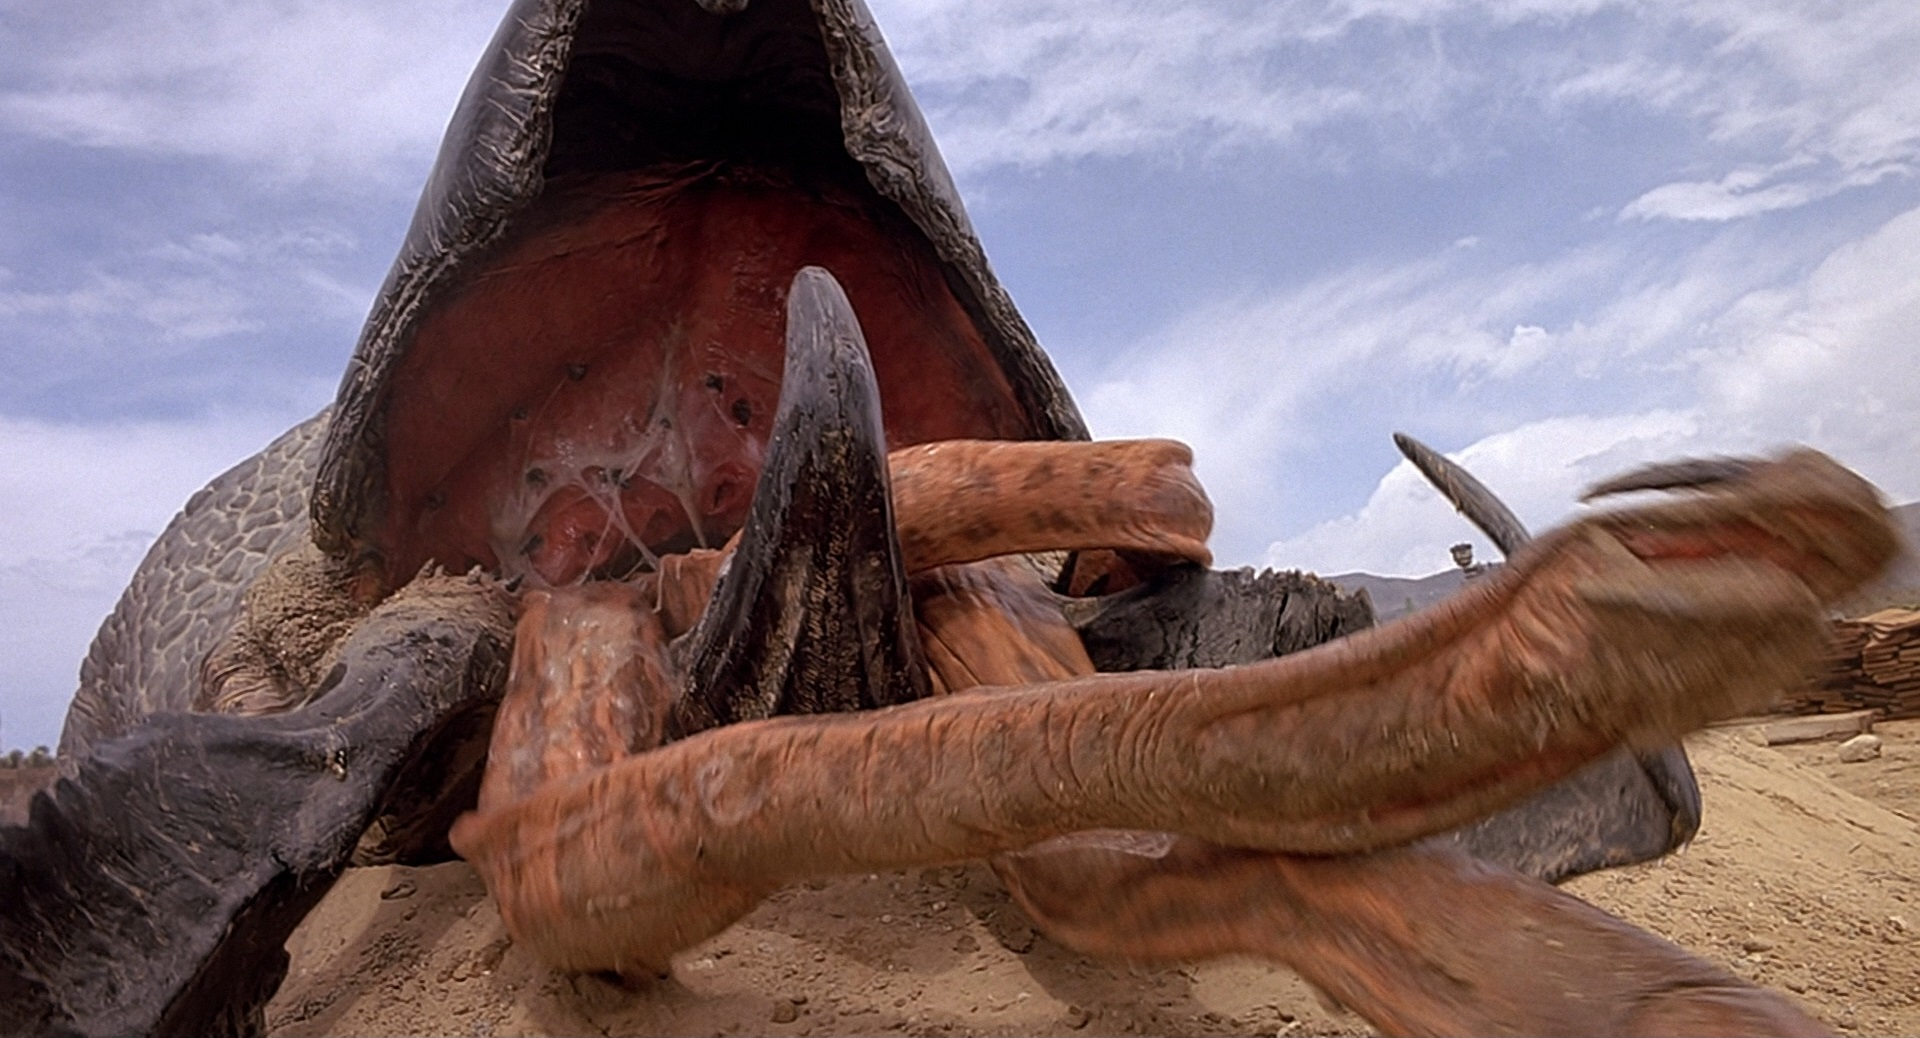 In the popular 1990 creature feature Tremors, the creature in question was a large underground worm called a Graboid.